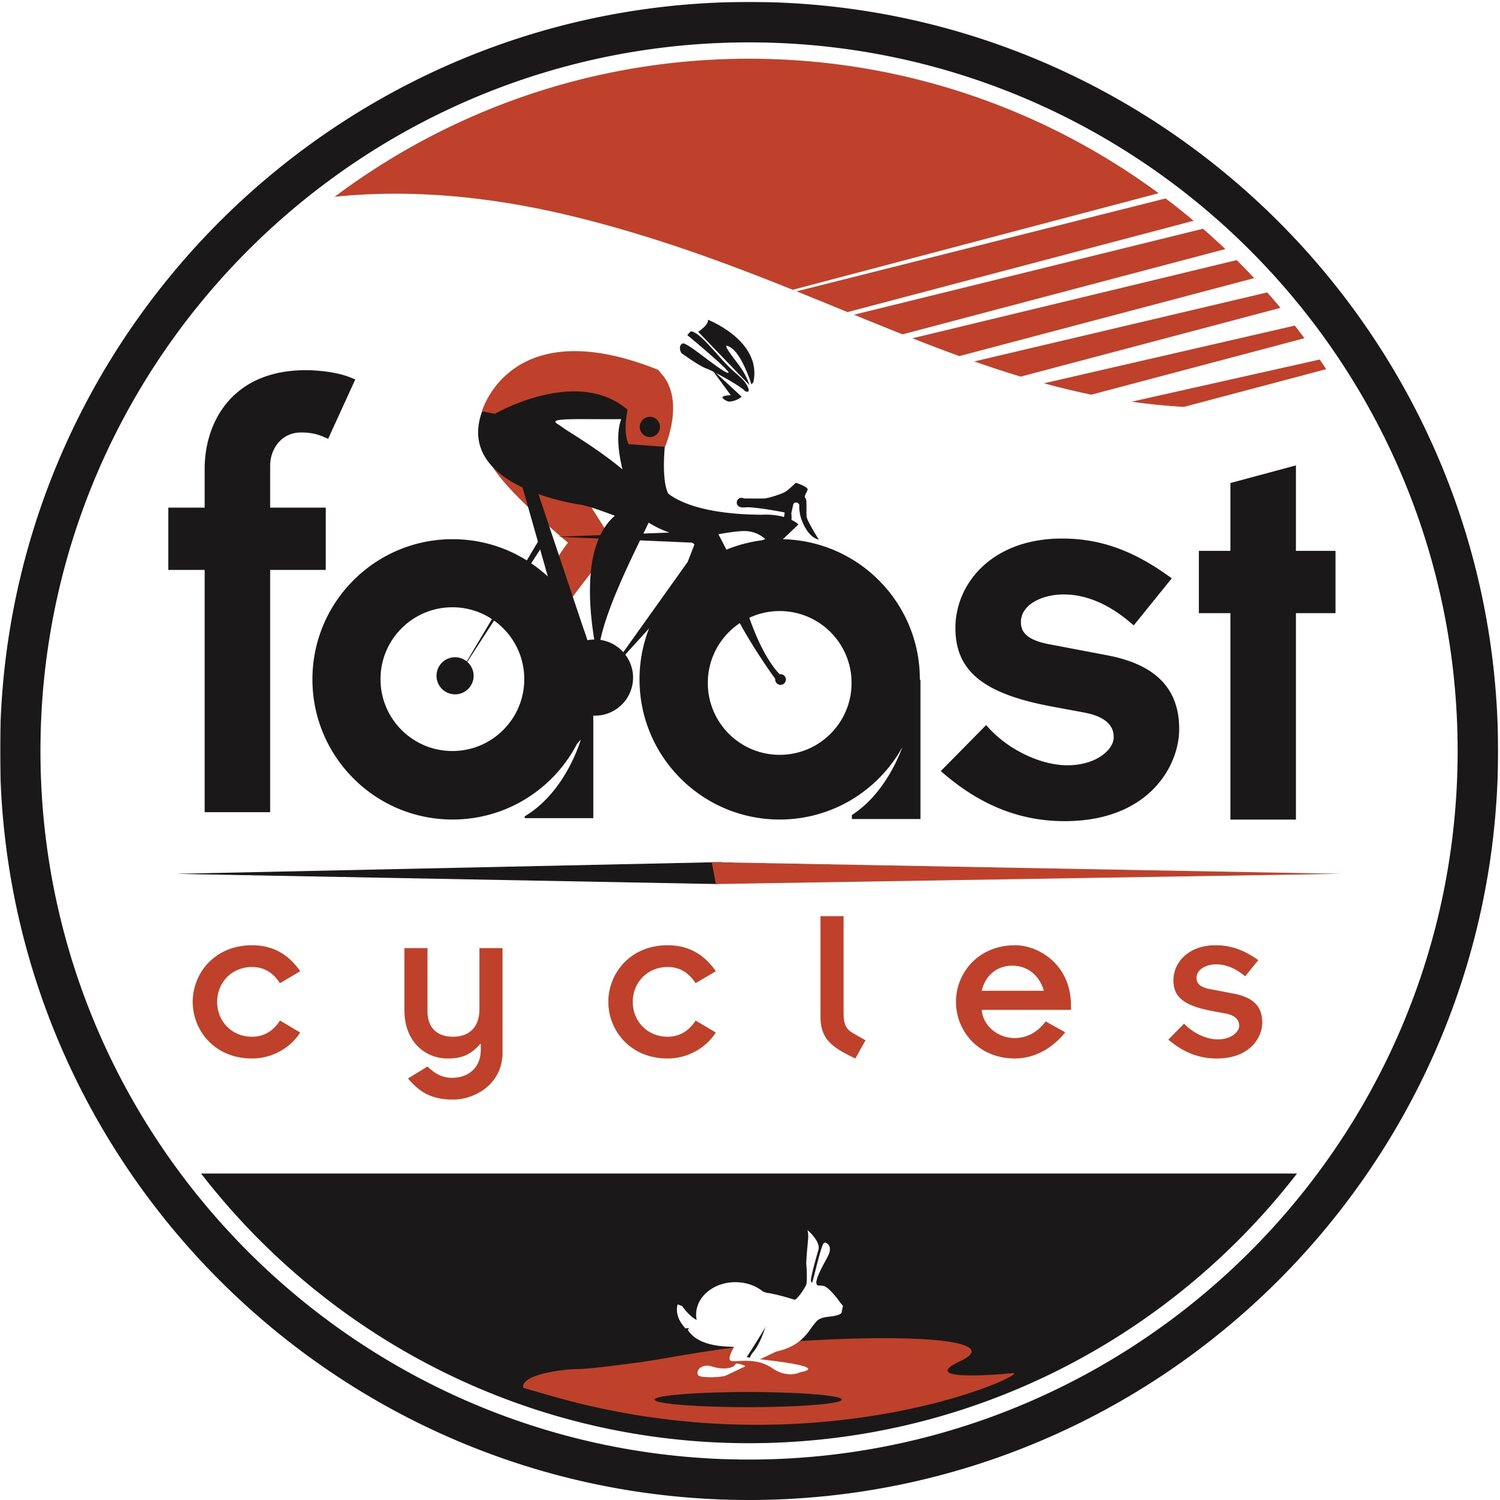 faast cycles